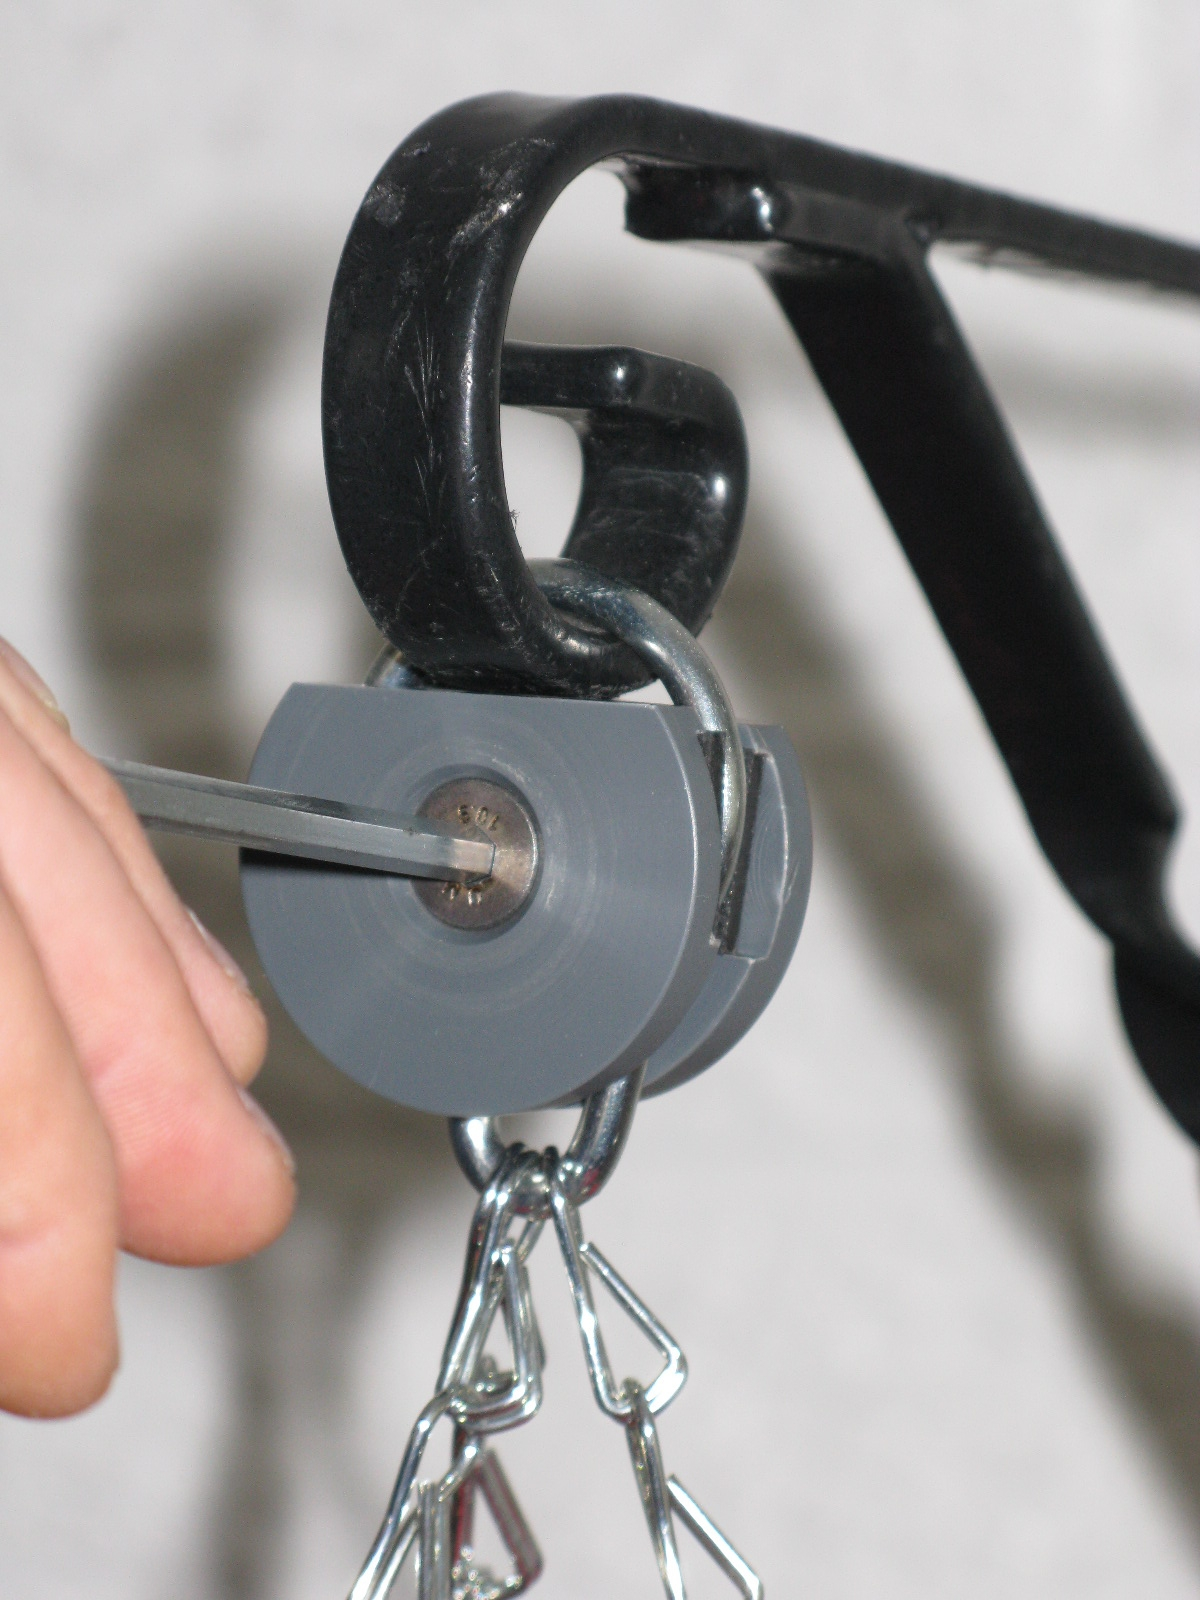 Basket-Geni locks your hanging baskets in place